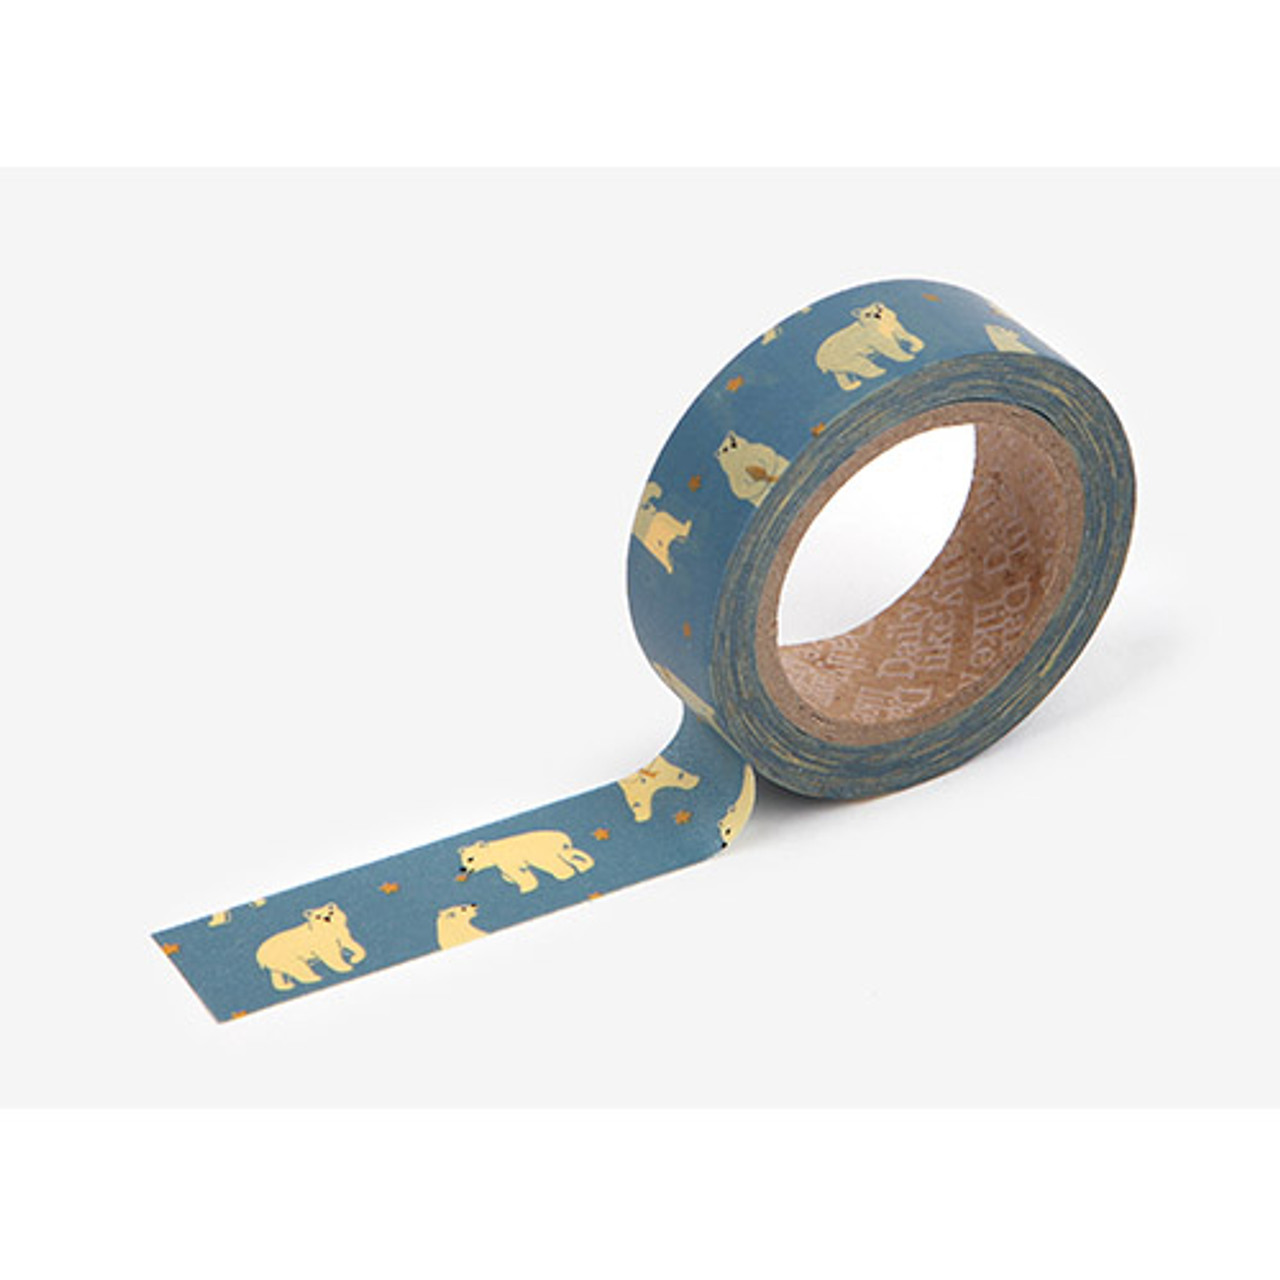 dailylike deco masking tape single friendly bear. Black Bedroom Furniture Sets. Home Design Ideas